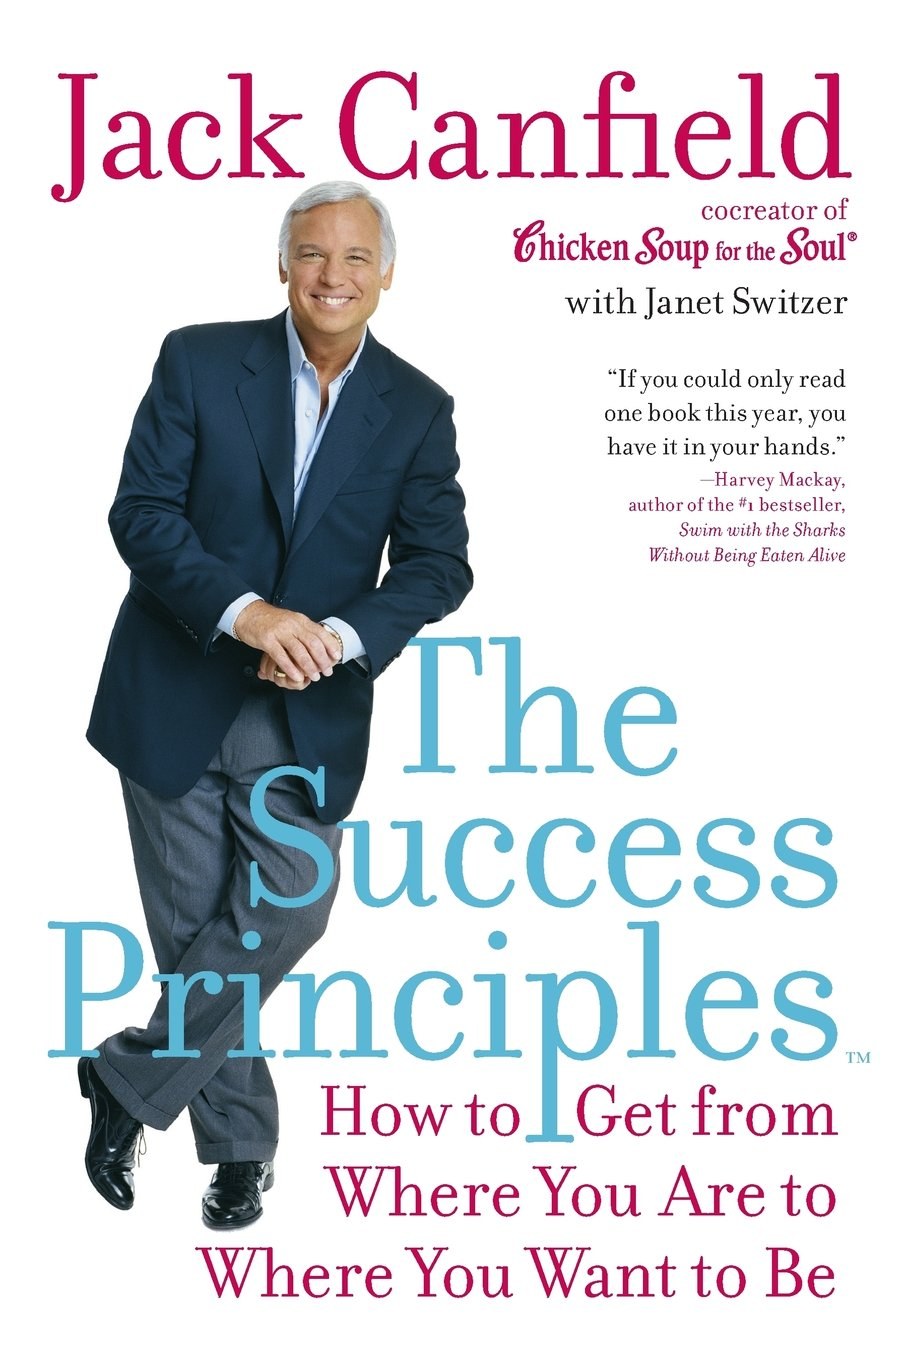 The Success Principles How to Get From Where You Are to Where You Want to Be (Jack Canfield)